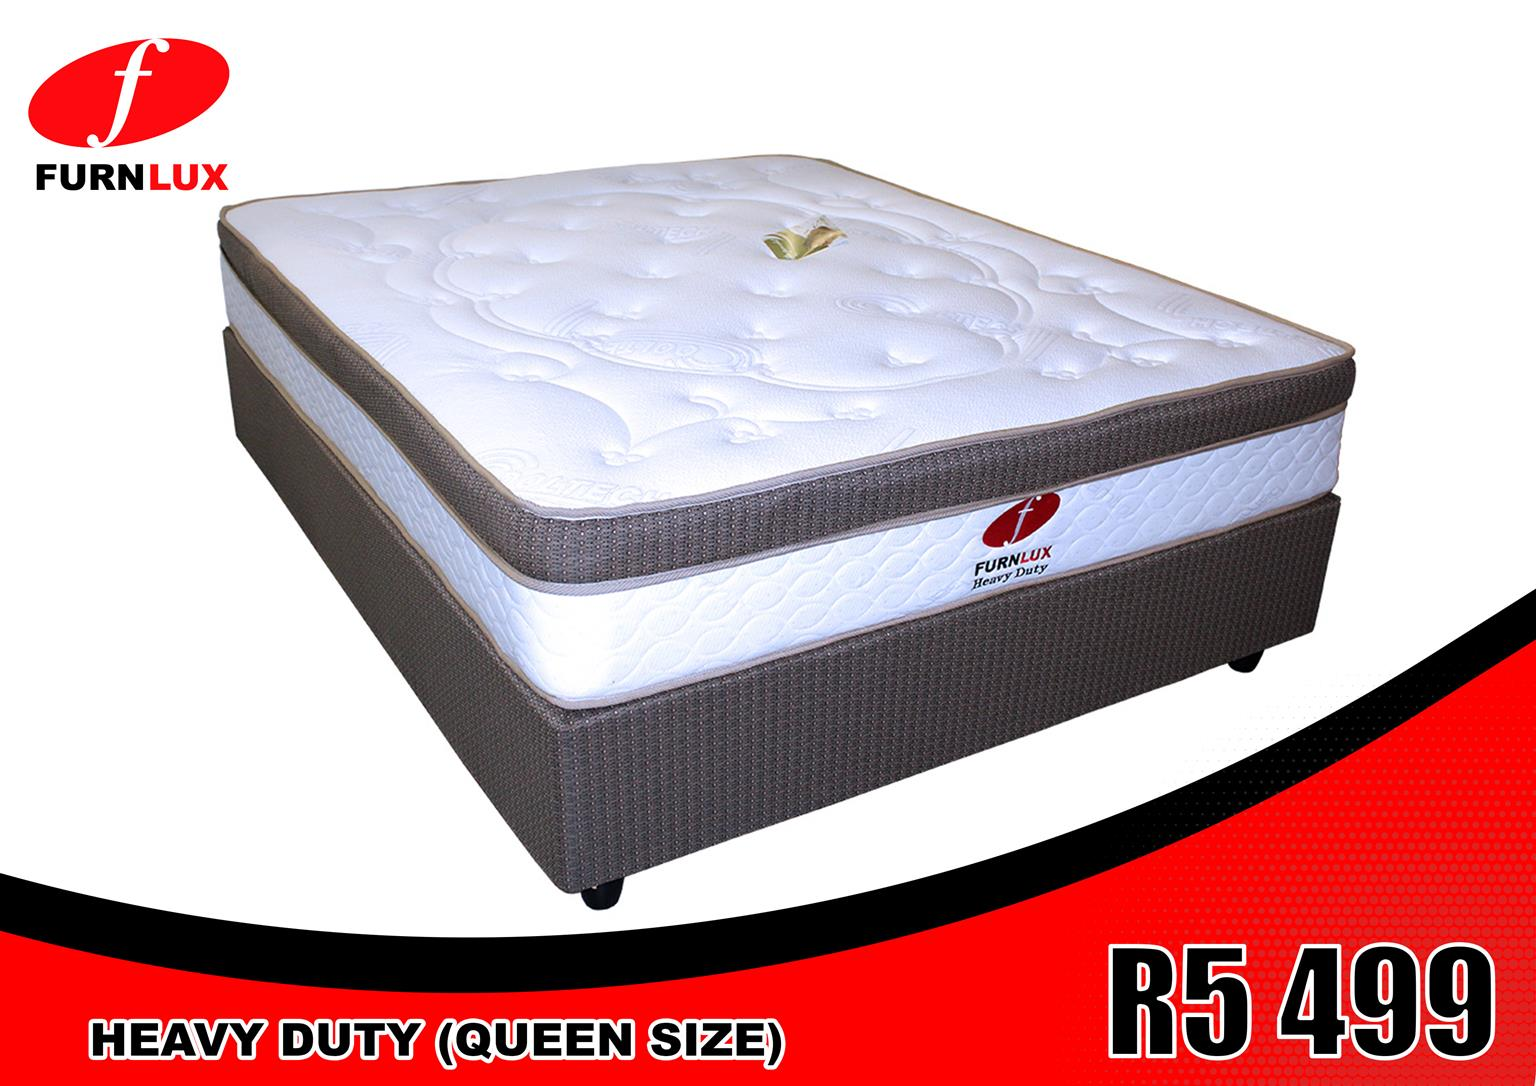 QUALITY BEDS BRAND NEW HEAVY DUTY BED